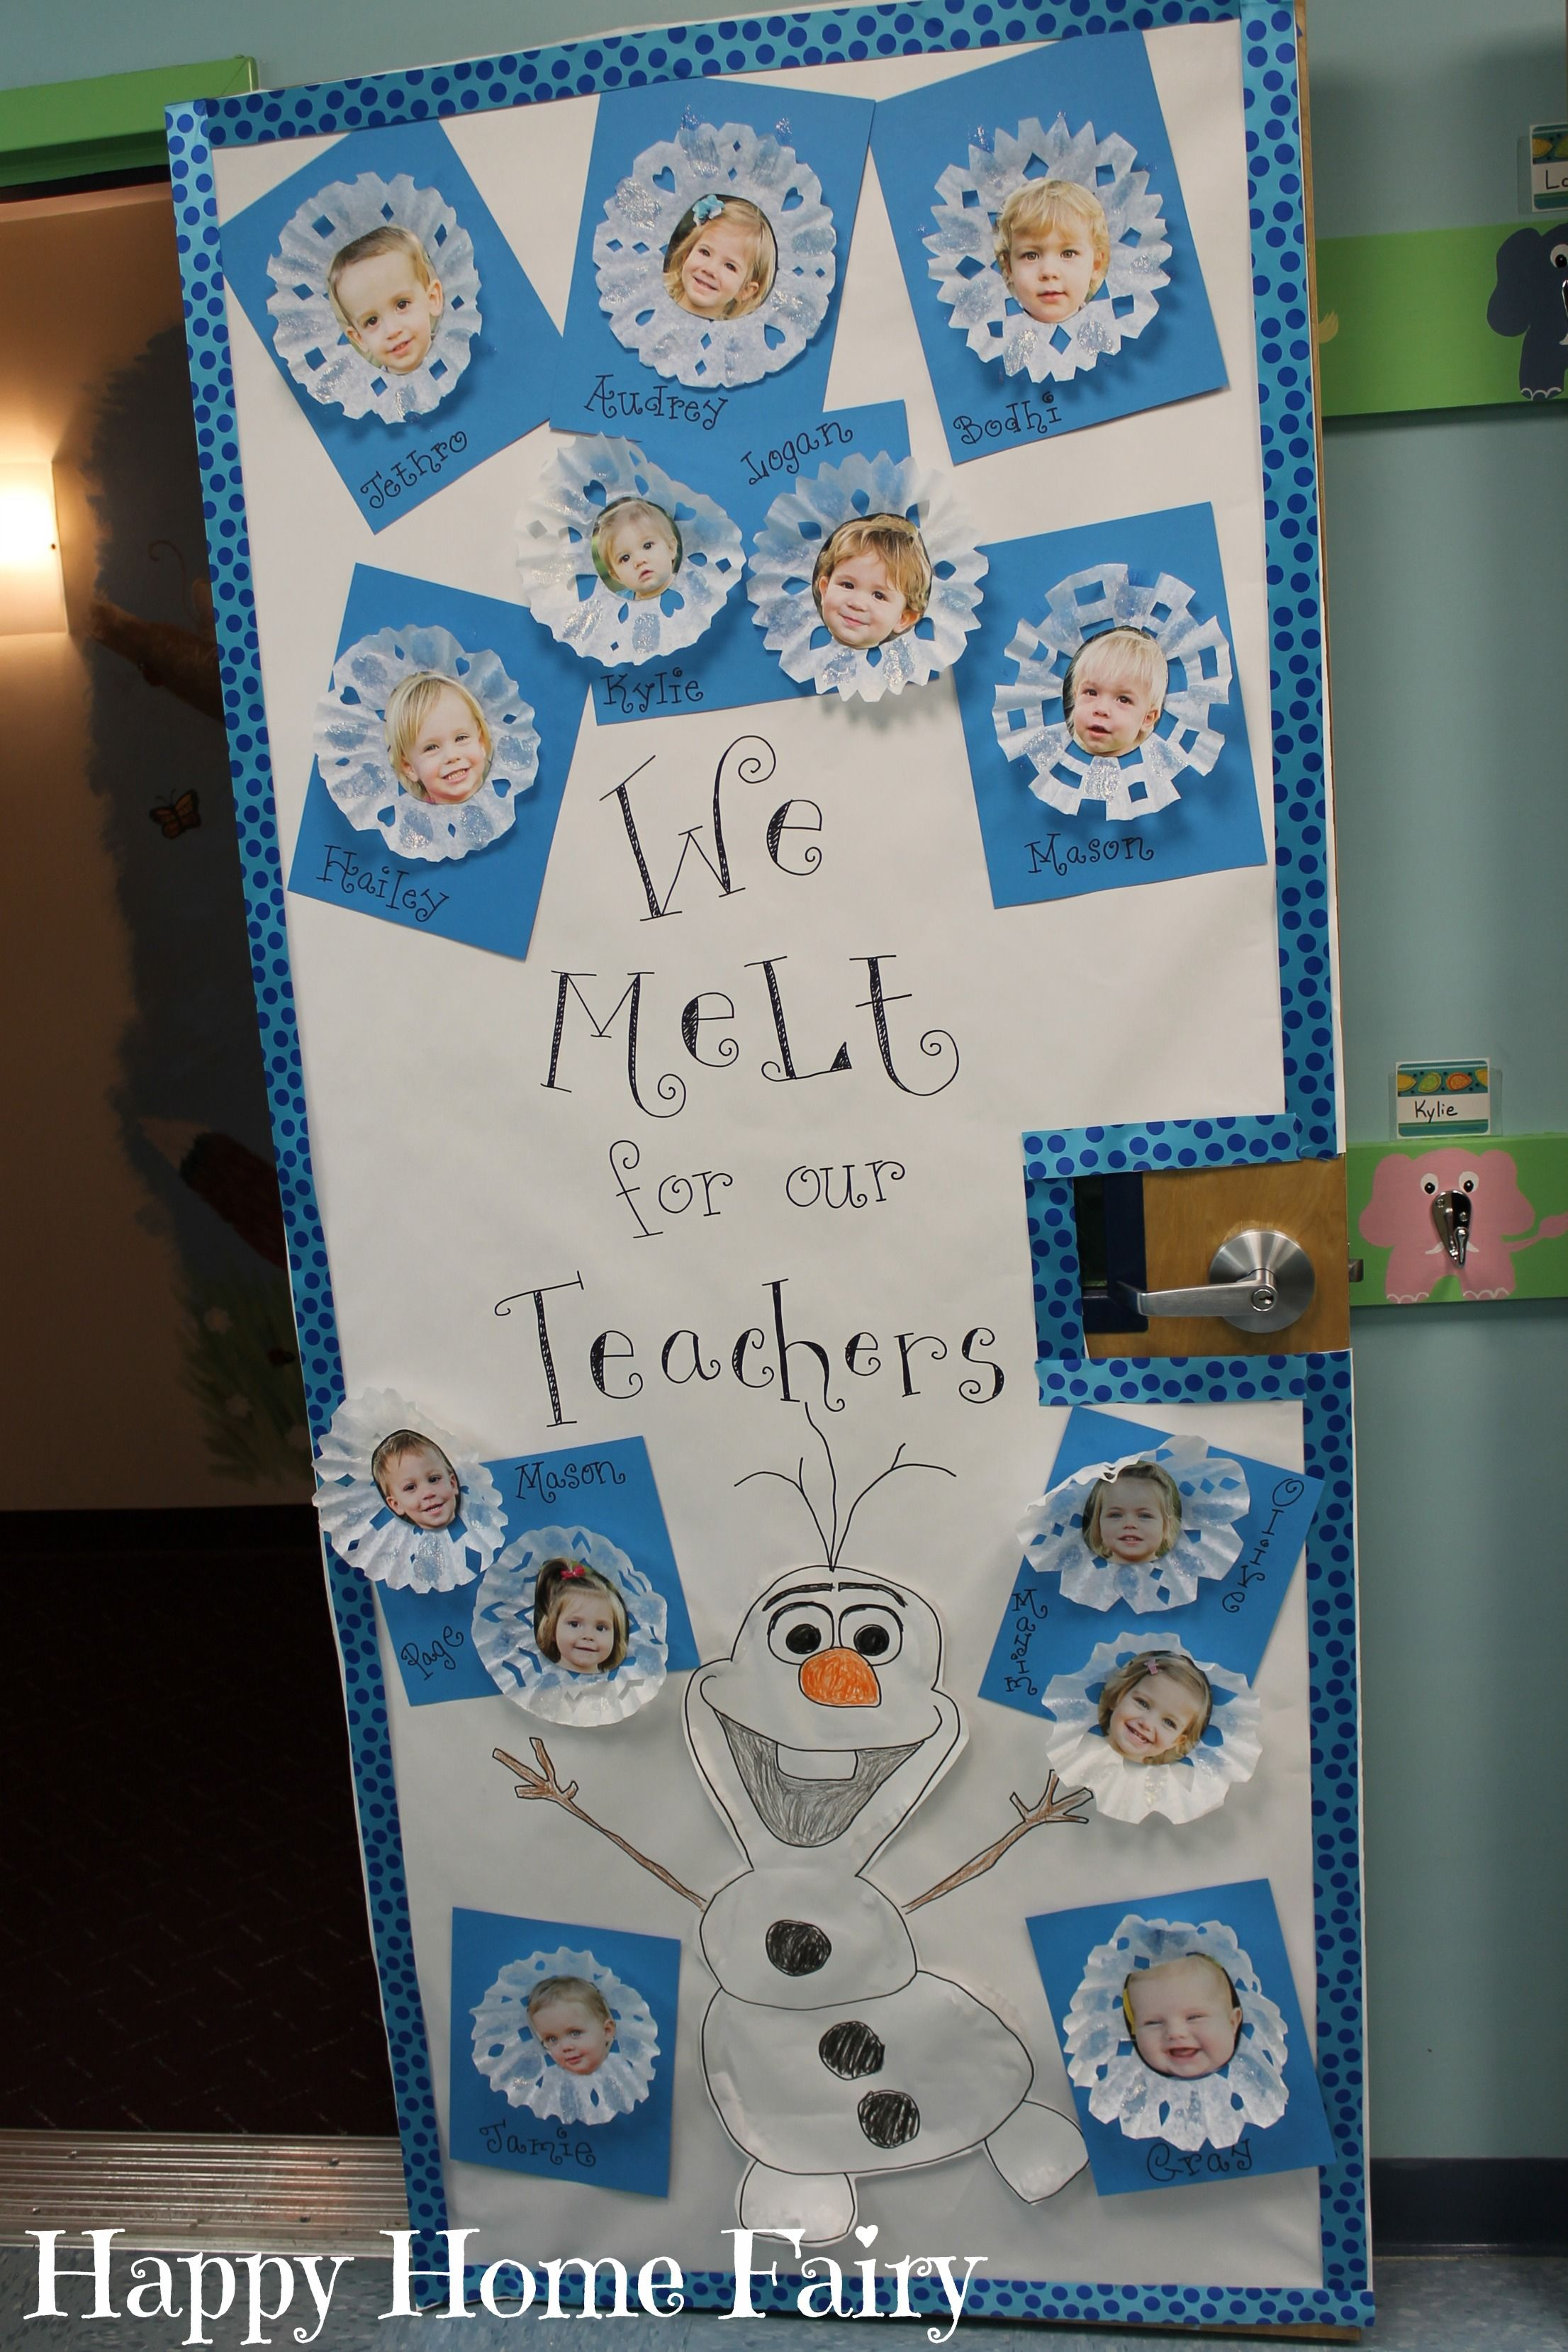 January classroom door decoration ideas - Adorable Teacher Appreciation Door Idea